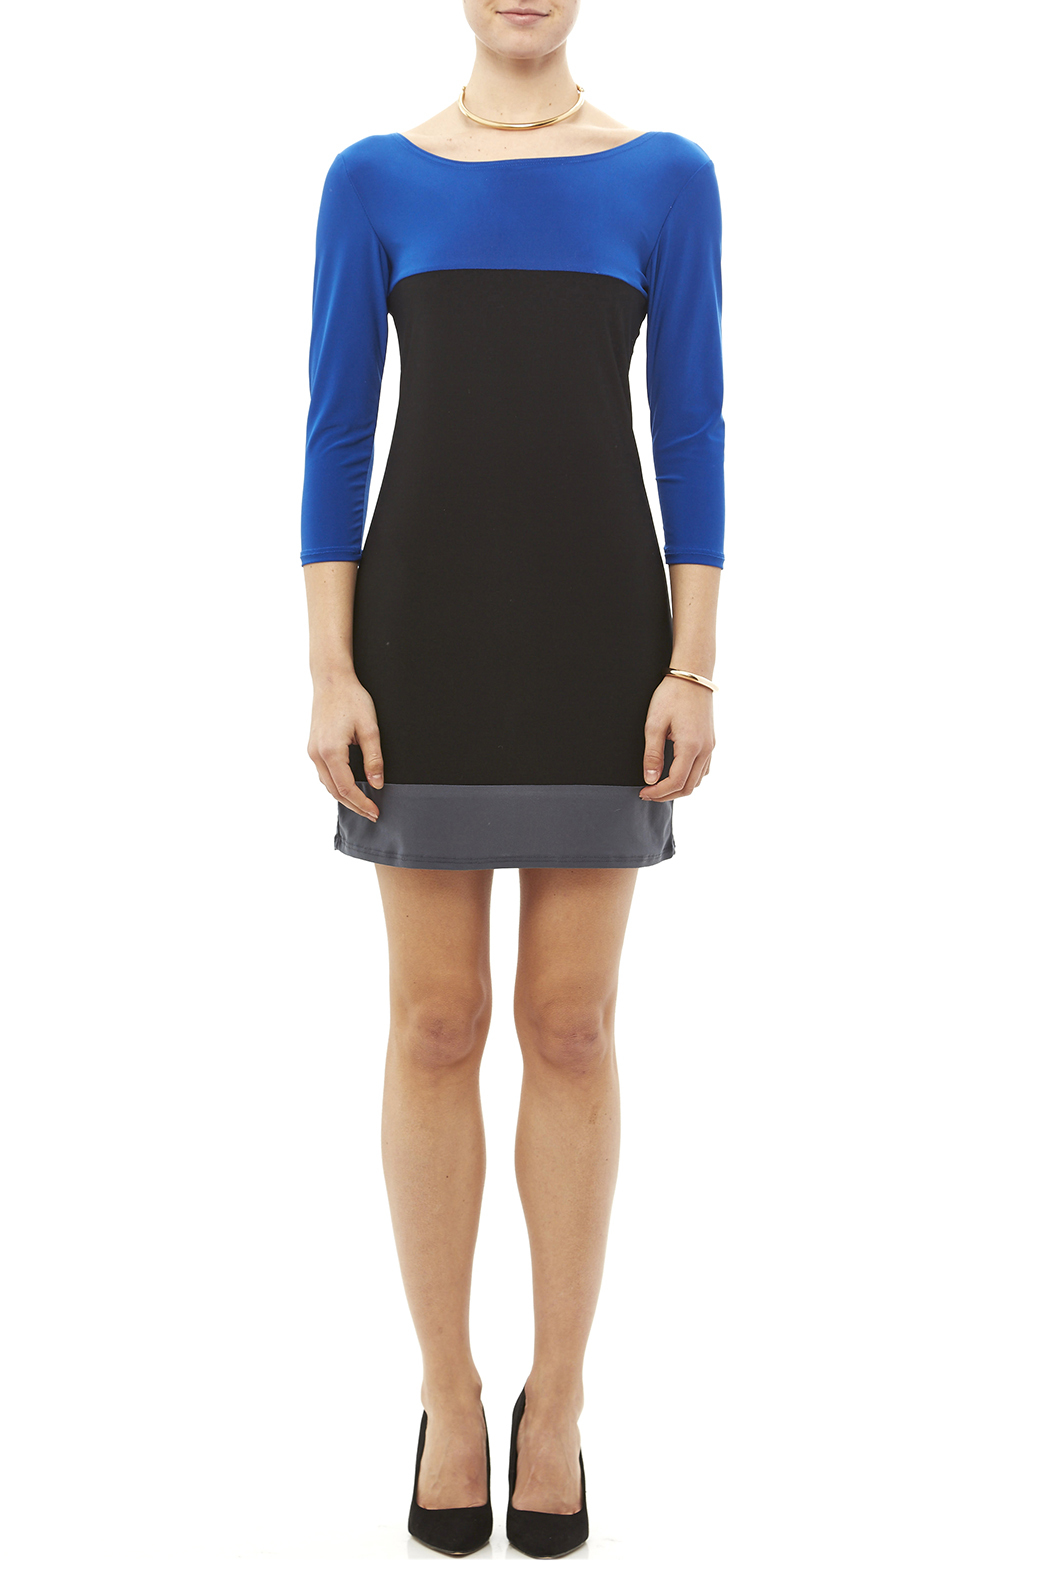 Star Vixen Color Block Tunic - Front Full Image